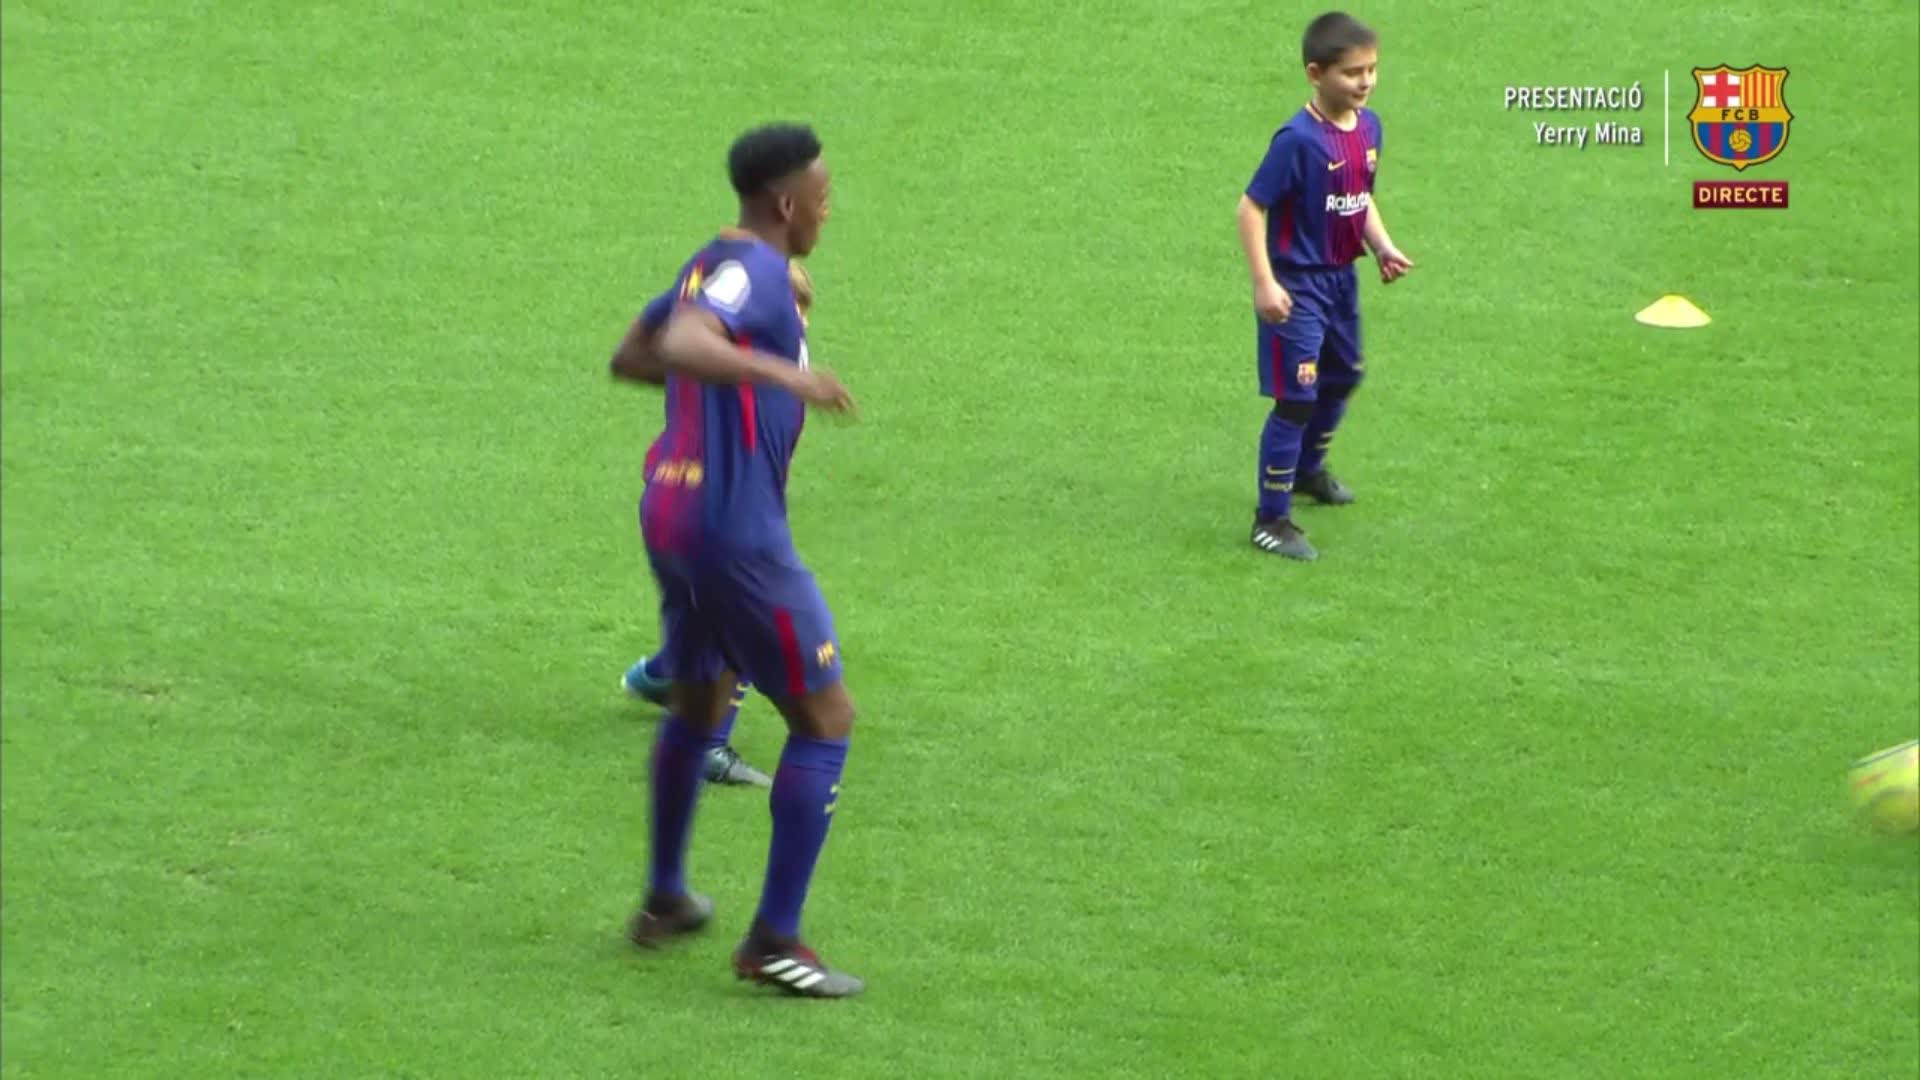 �� It's not just dancing - Yerry Mina has some other moves, too! ���� Força Barça https://t.co/qNm4bdS8Qv